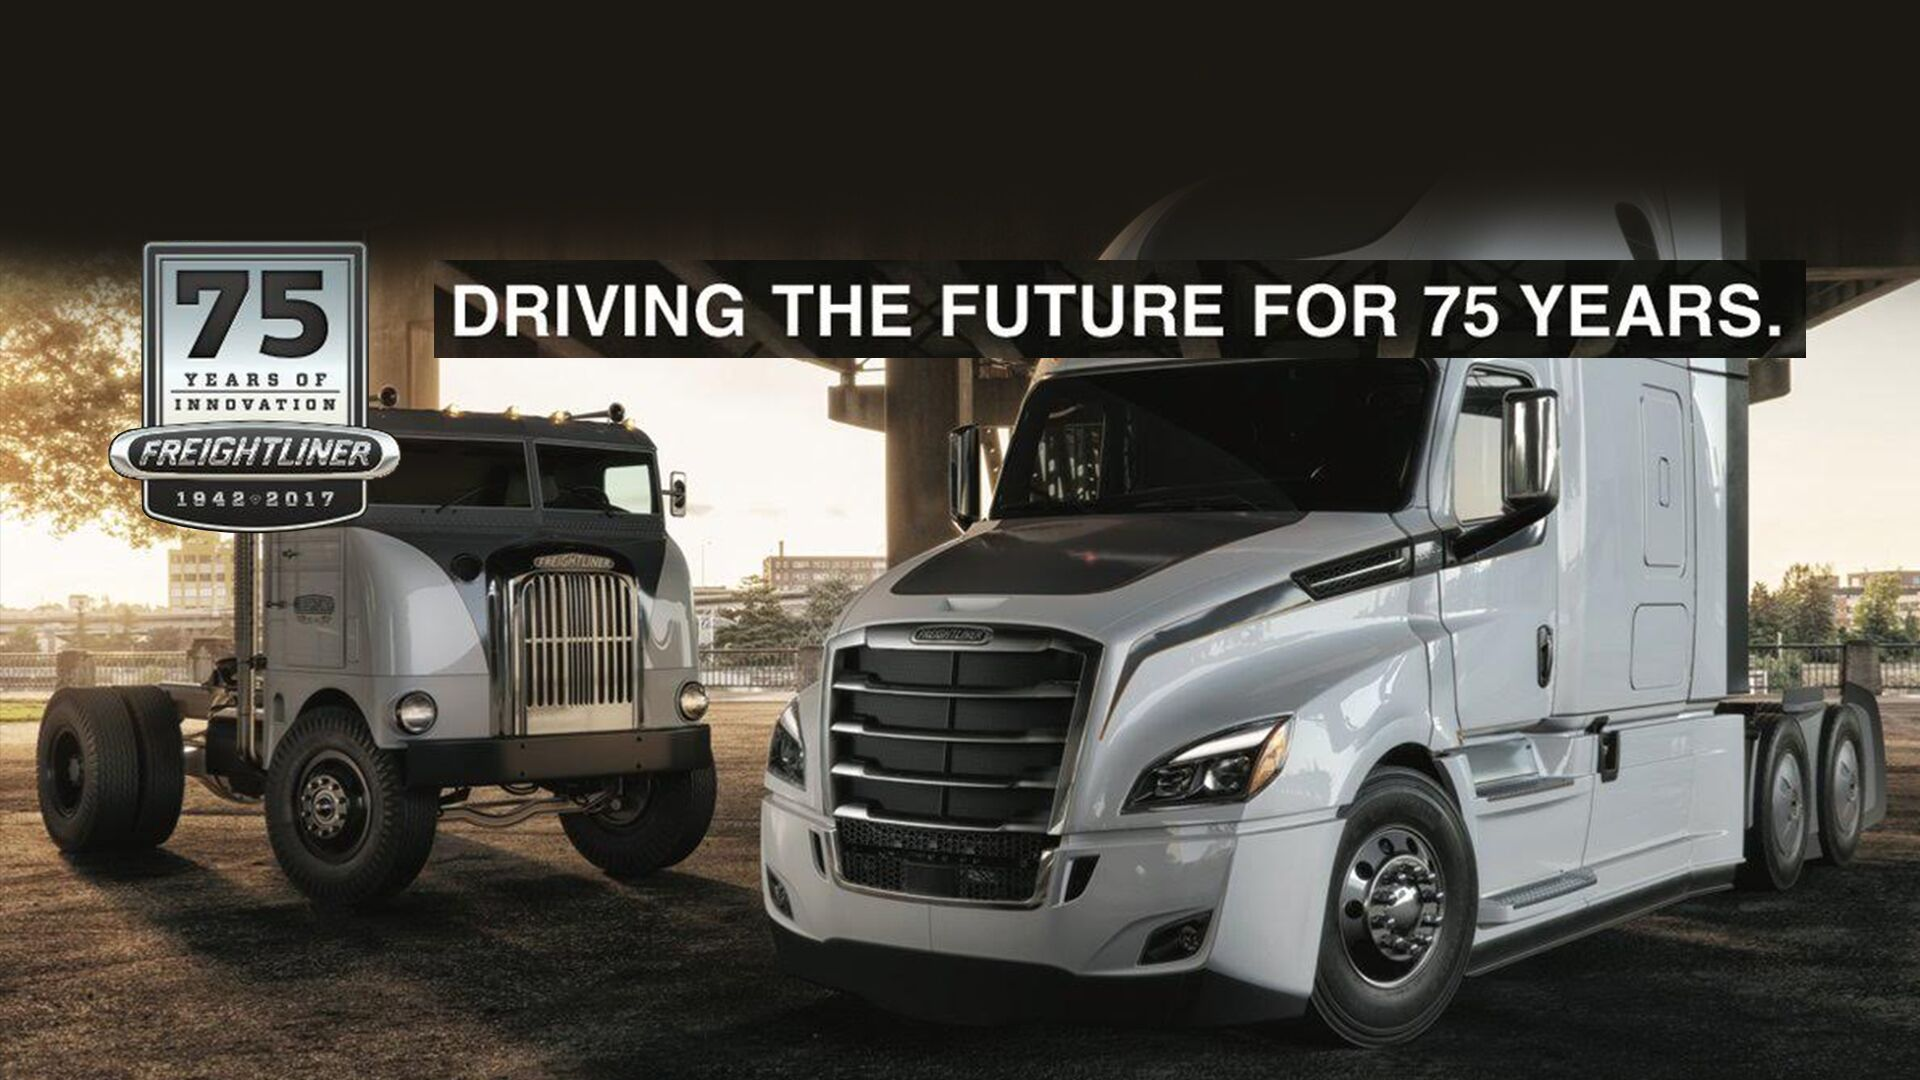 Fuso Dealership Calgary Ab Used Cars New West Truck Centres 2014 Cascadia Fuse Box Key 75 Years Of Innovation